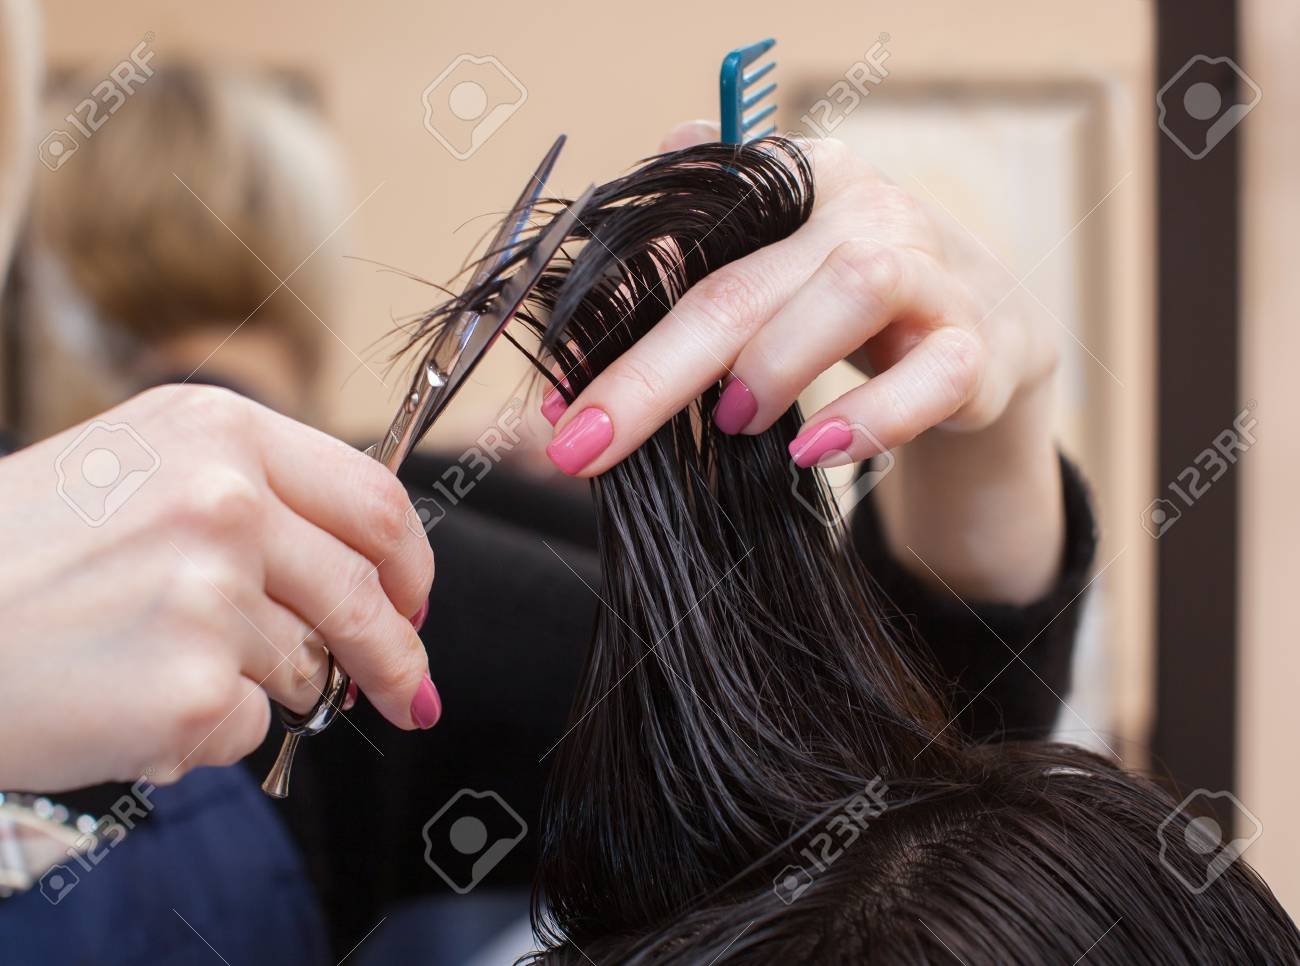 The Hairdresser Does A Haircut With Hot Scissors Of Hair To A